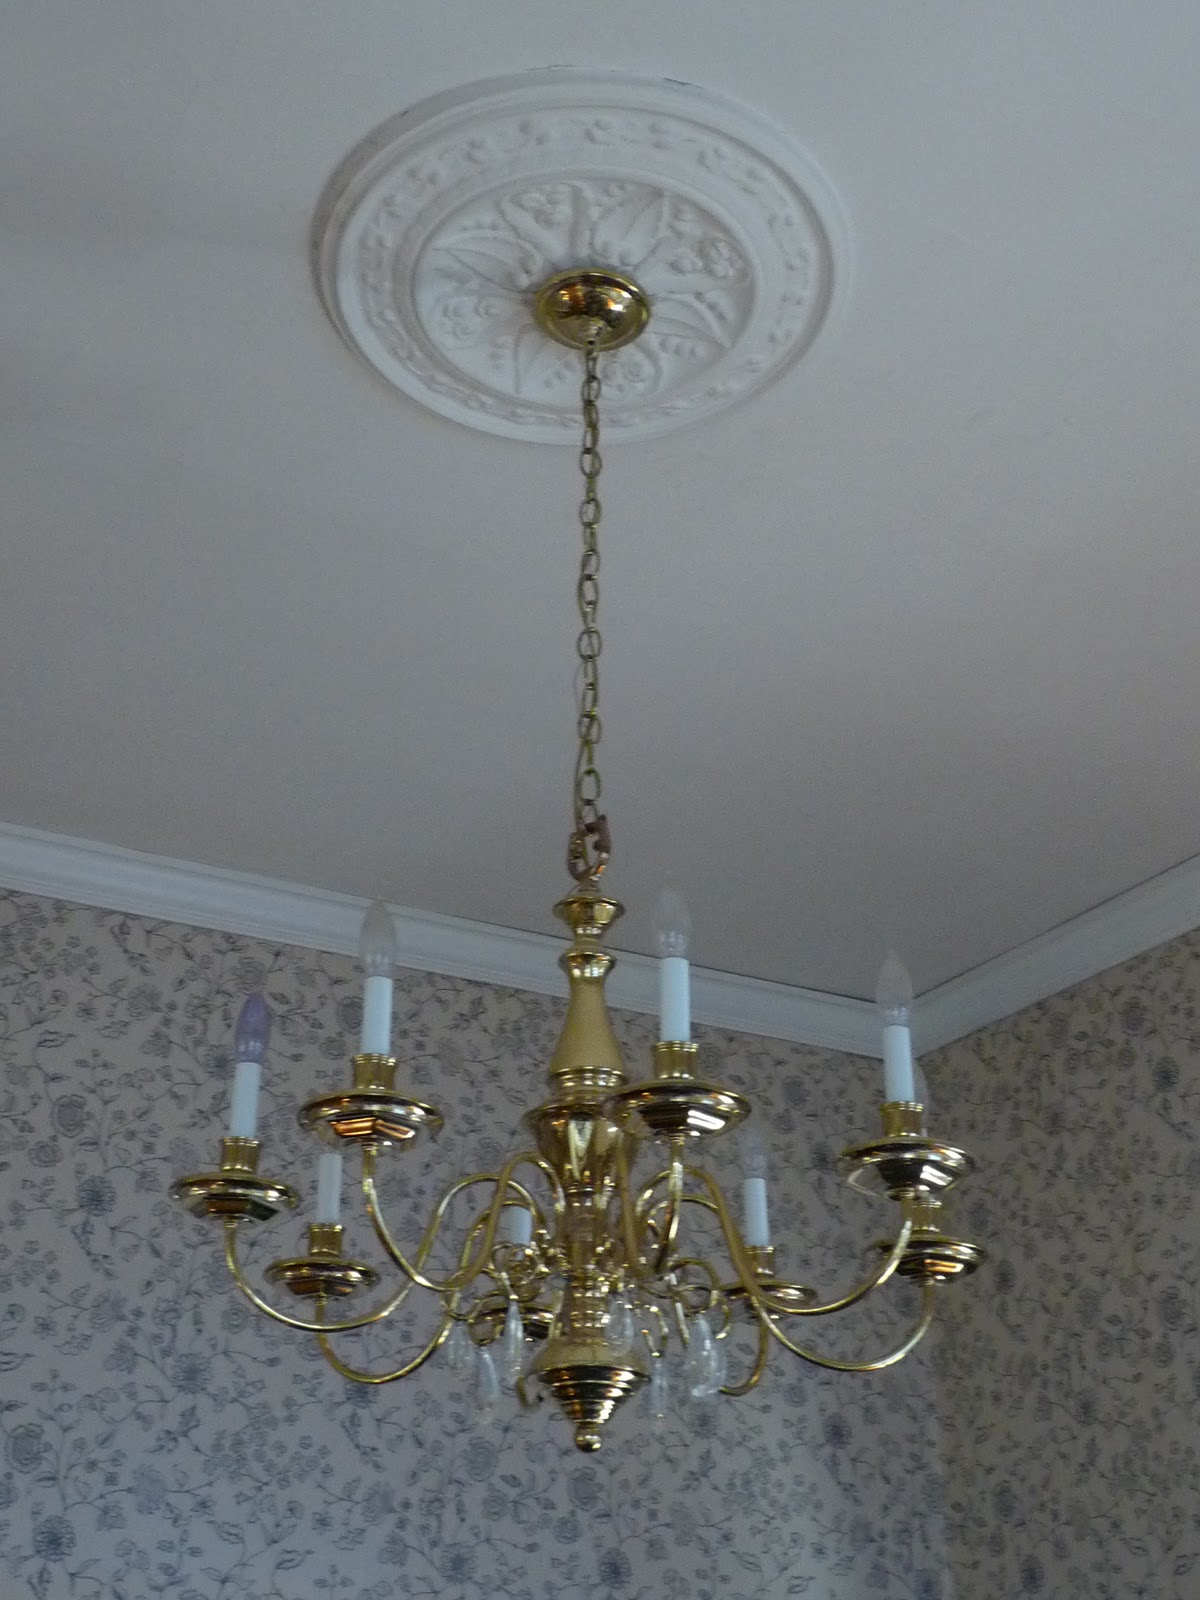 Inspirational It is just a standard brass chandelier It was probably installed in the late us early us and clearly looking a bit dated